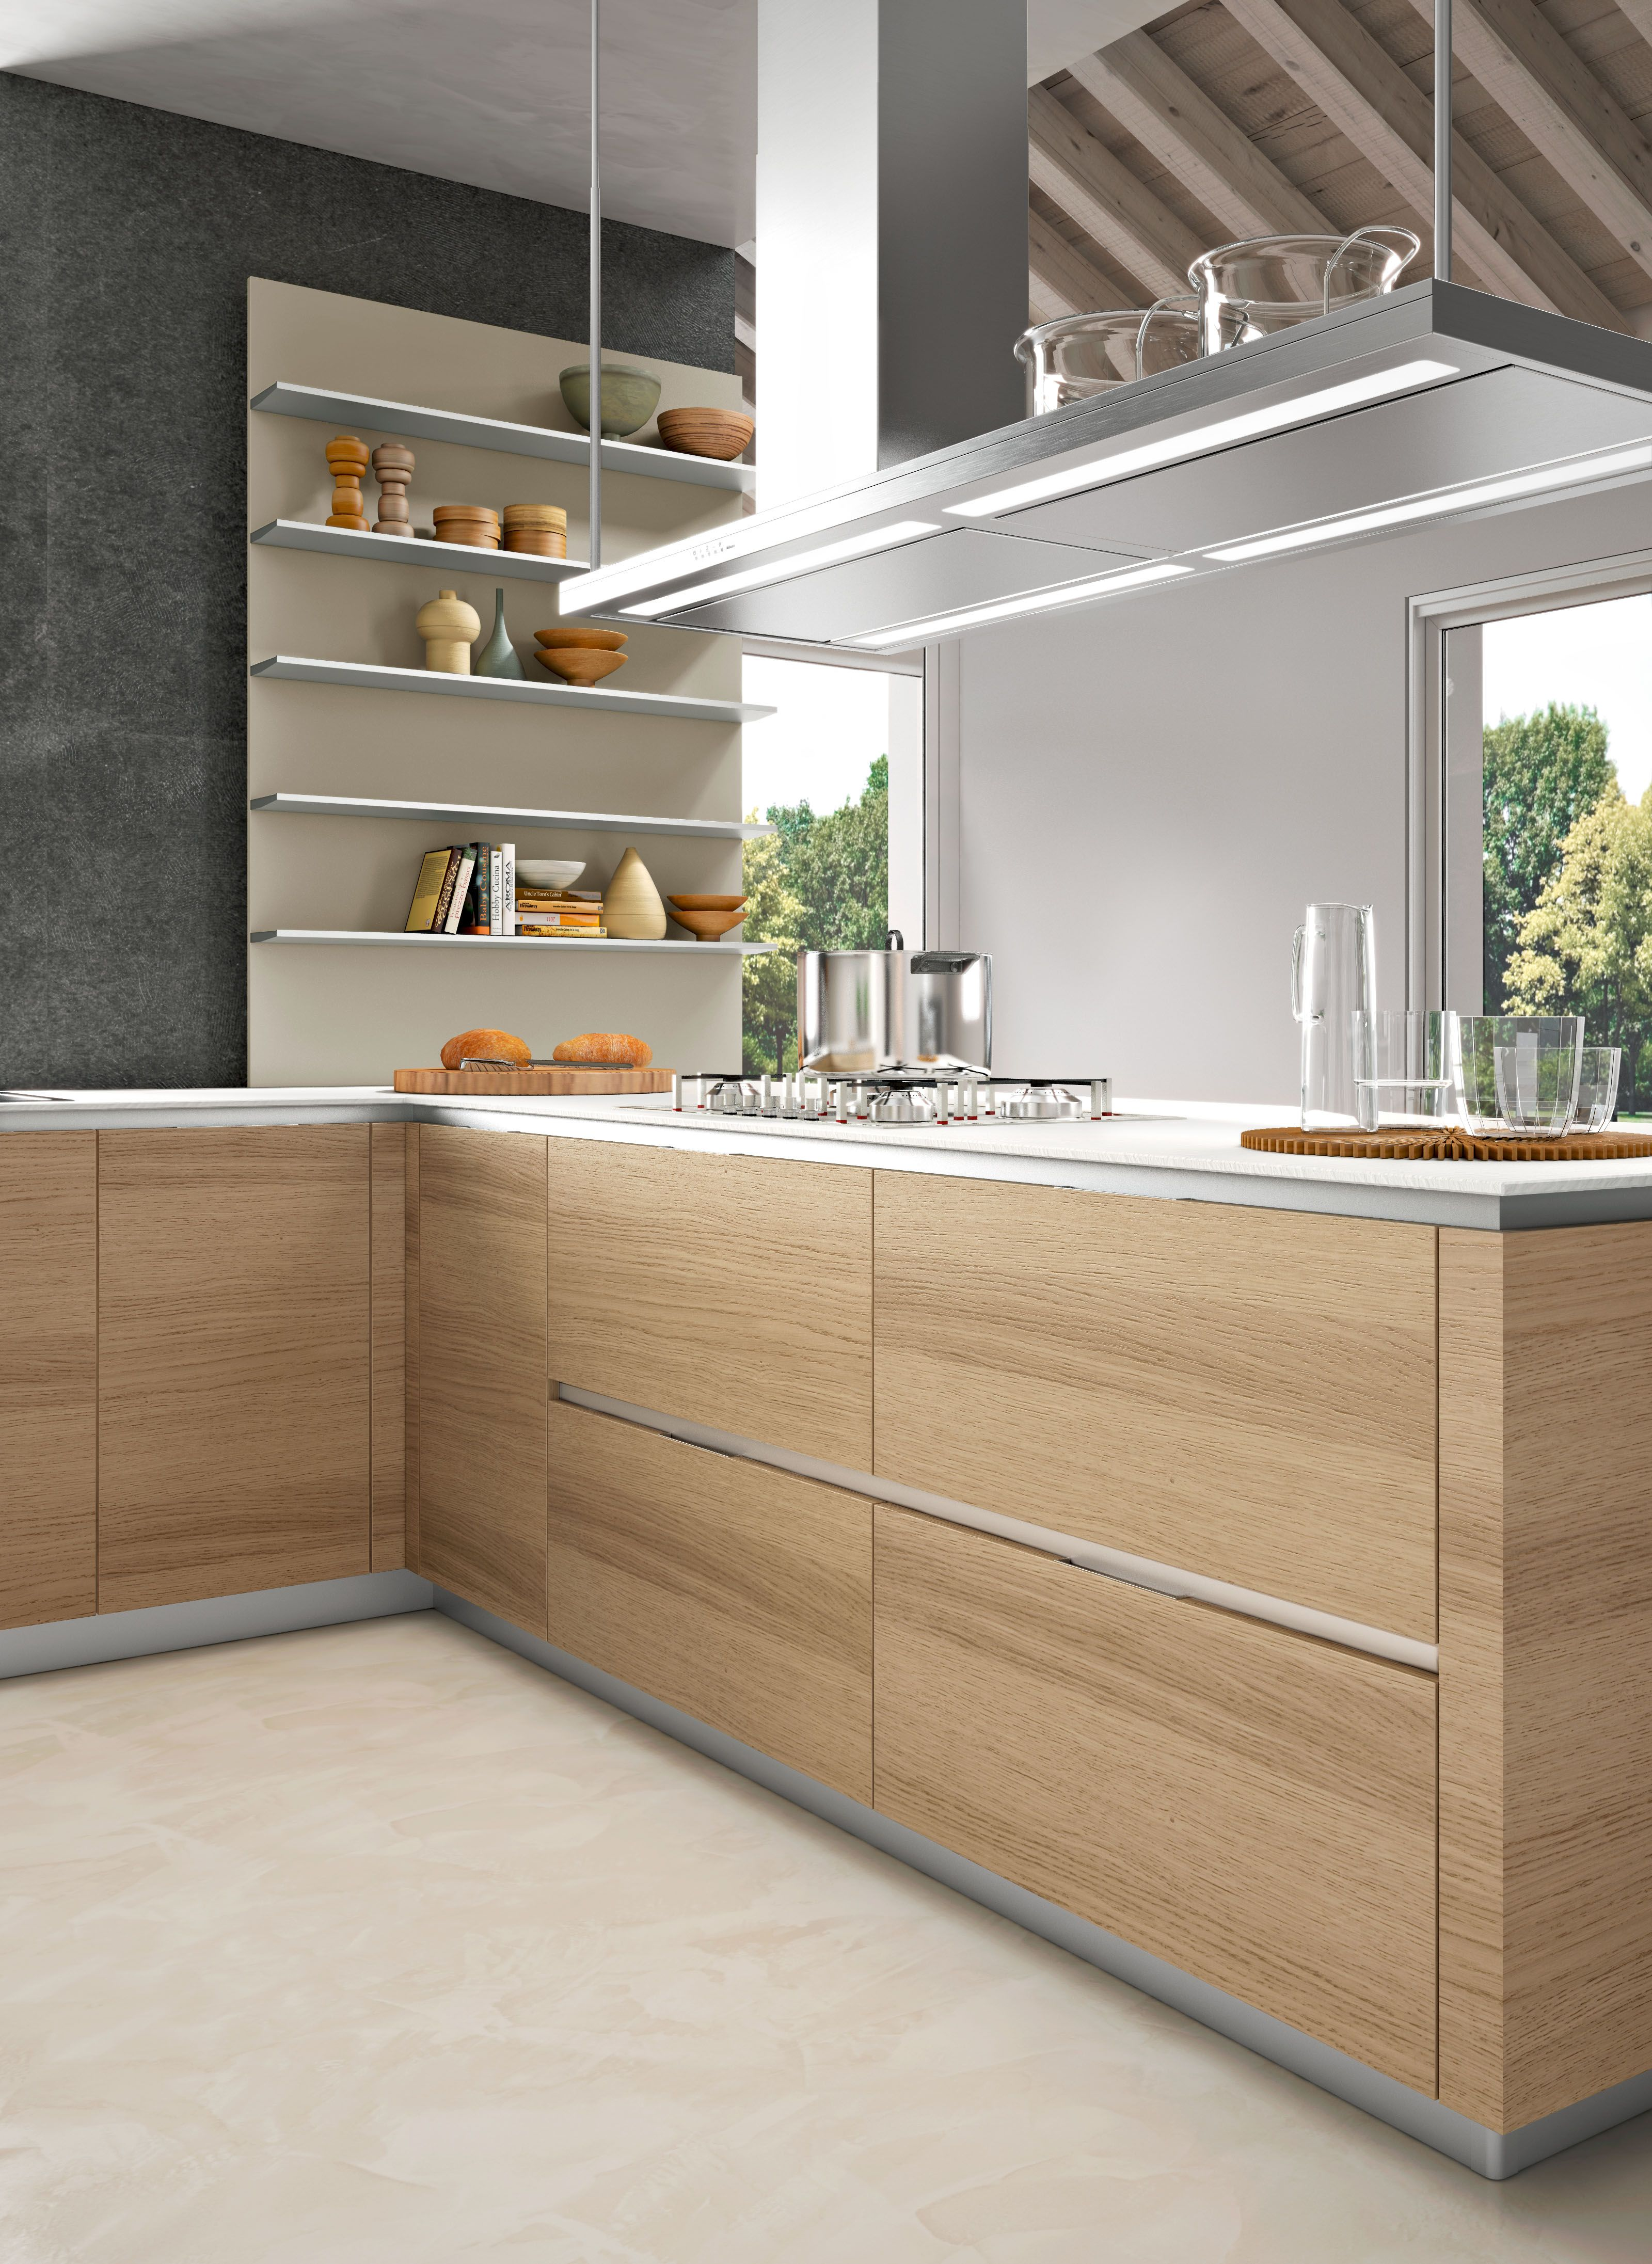 Clean lines and the warmth of timber very cool. Modern